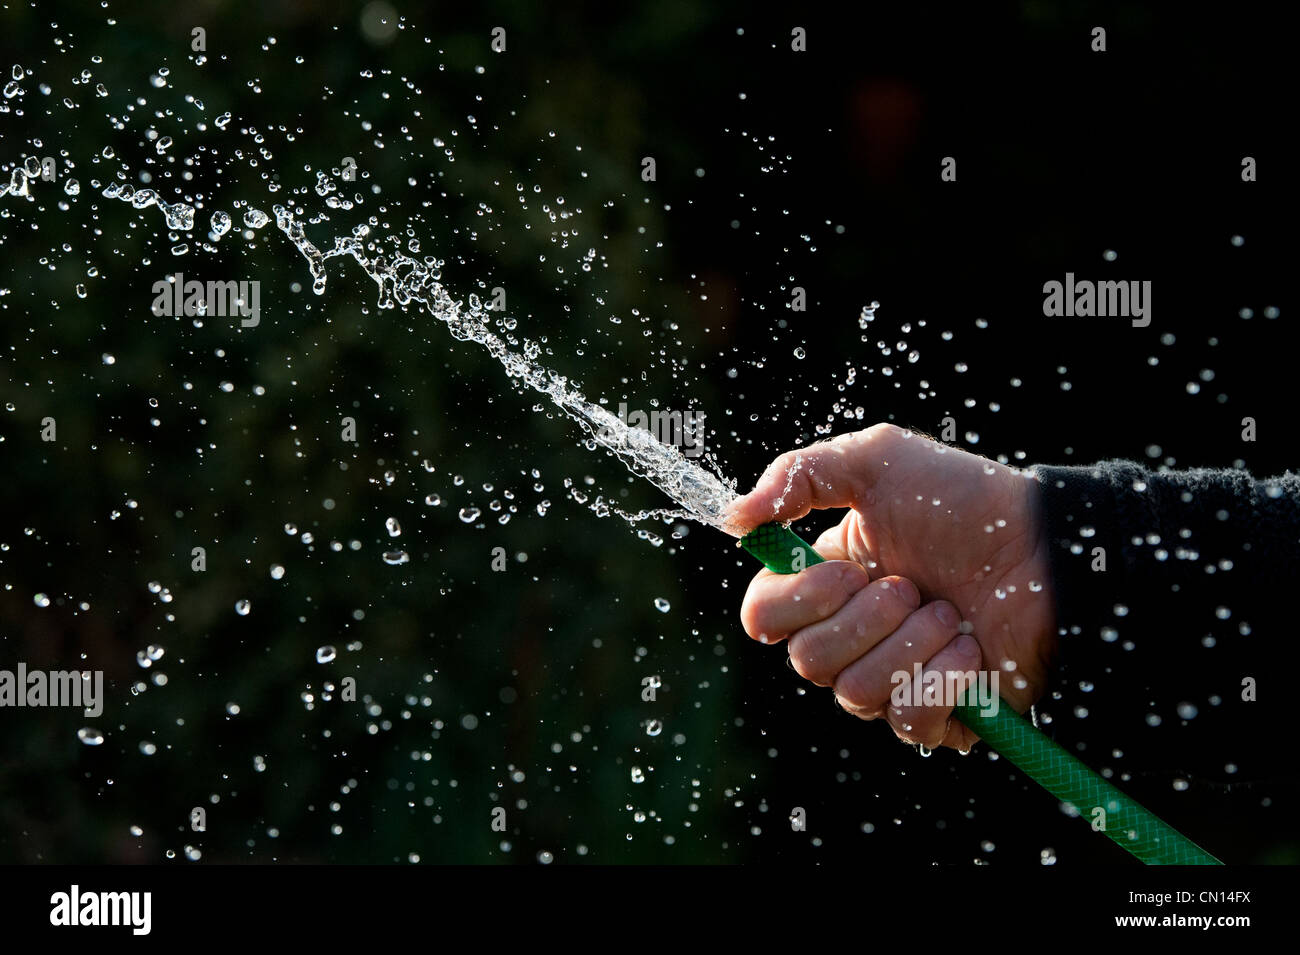 Hand spraying water with hosepipe against a dark background - Stock Image